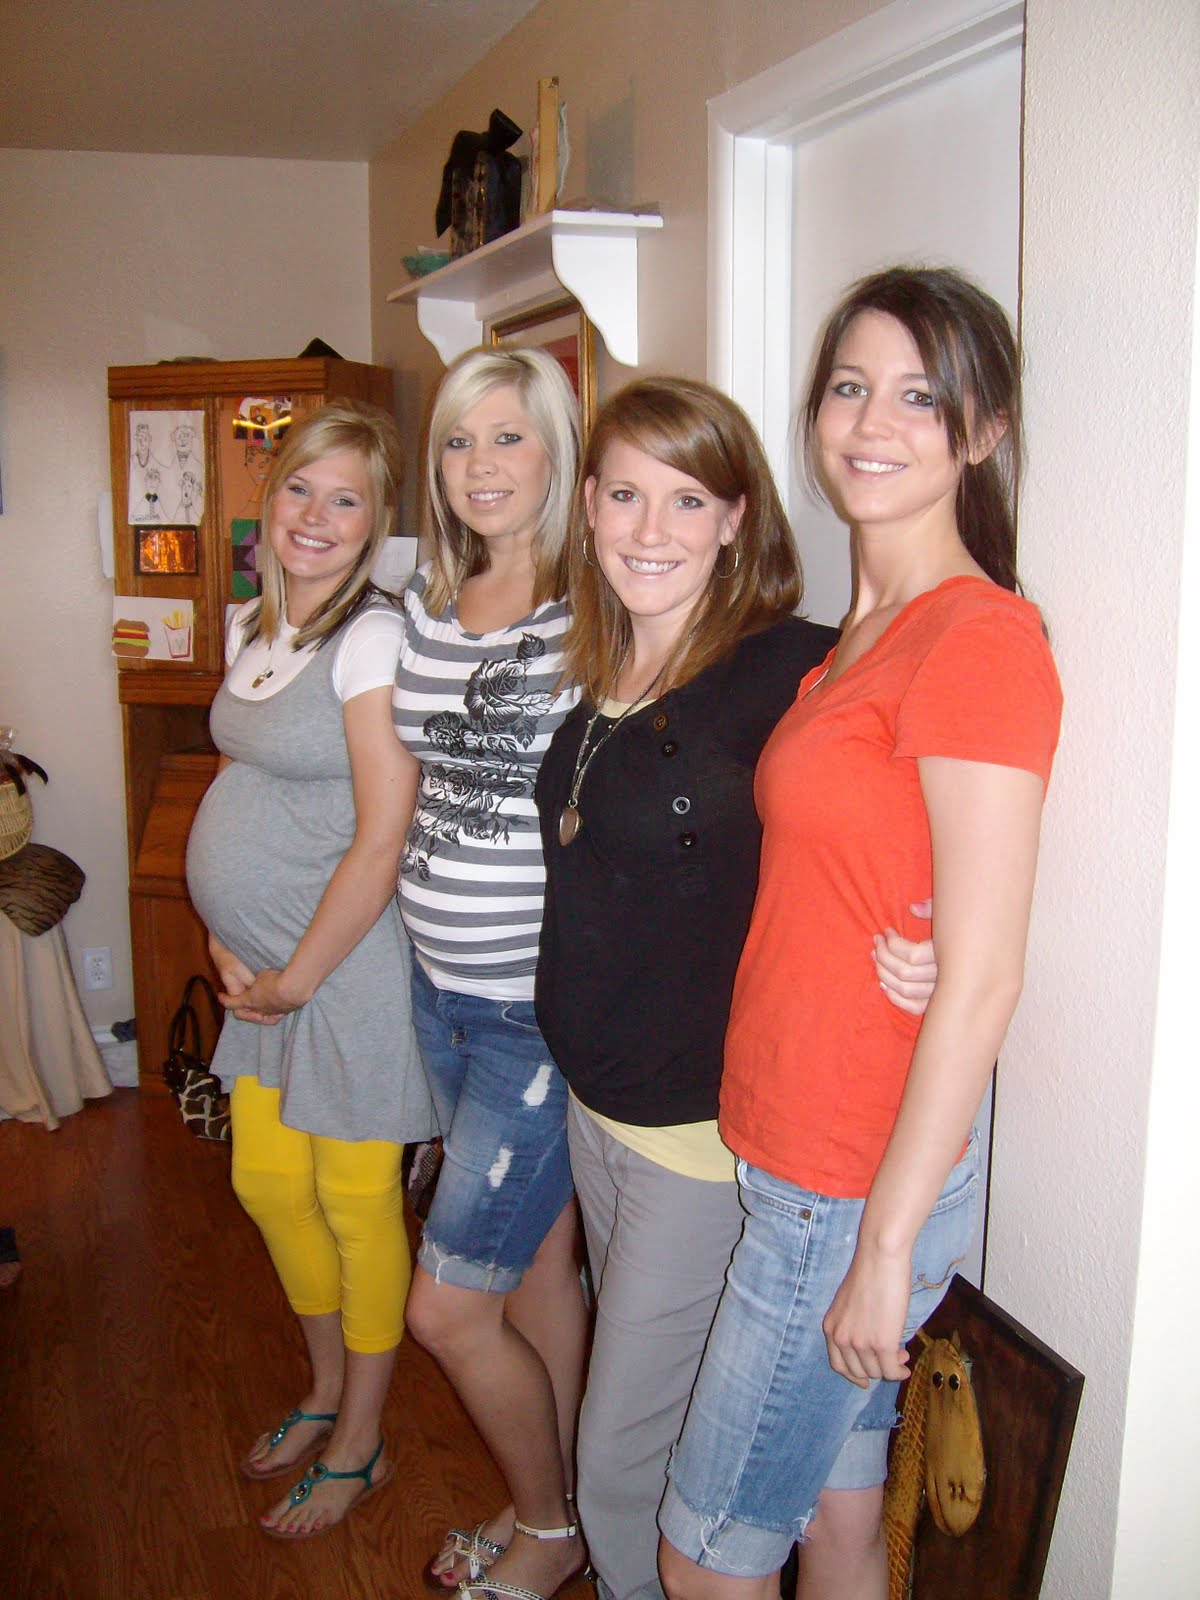 Plus check it out, all 4 of us are pregnant at the same time!